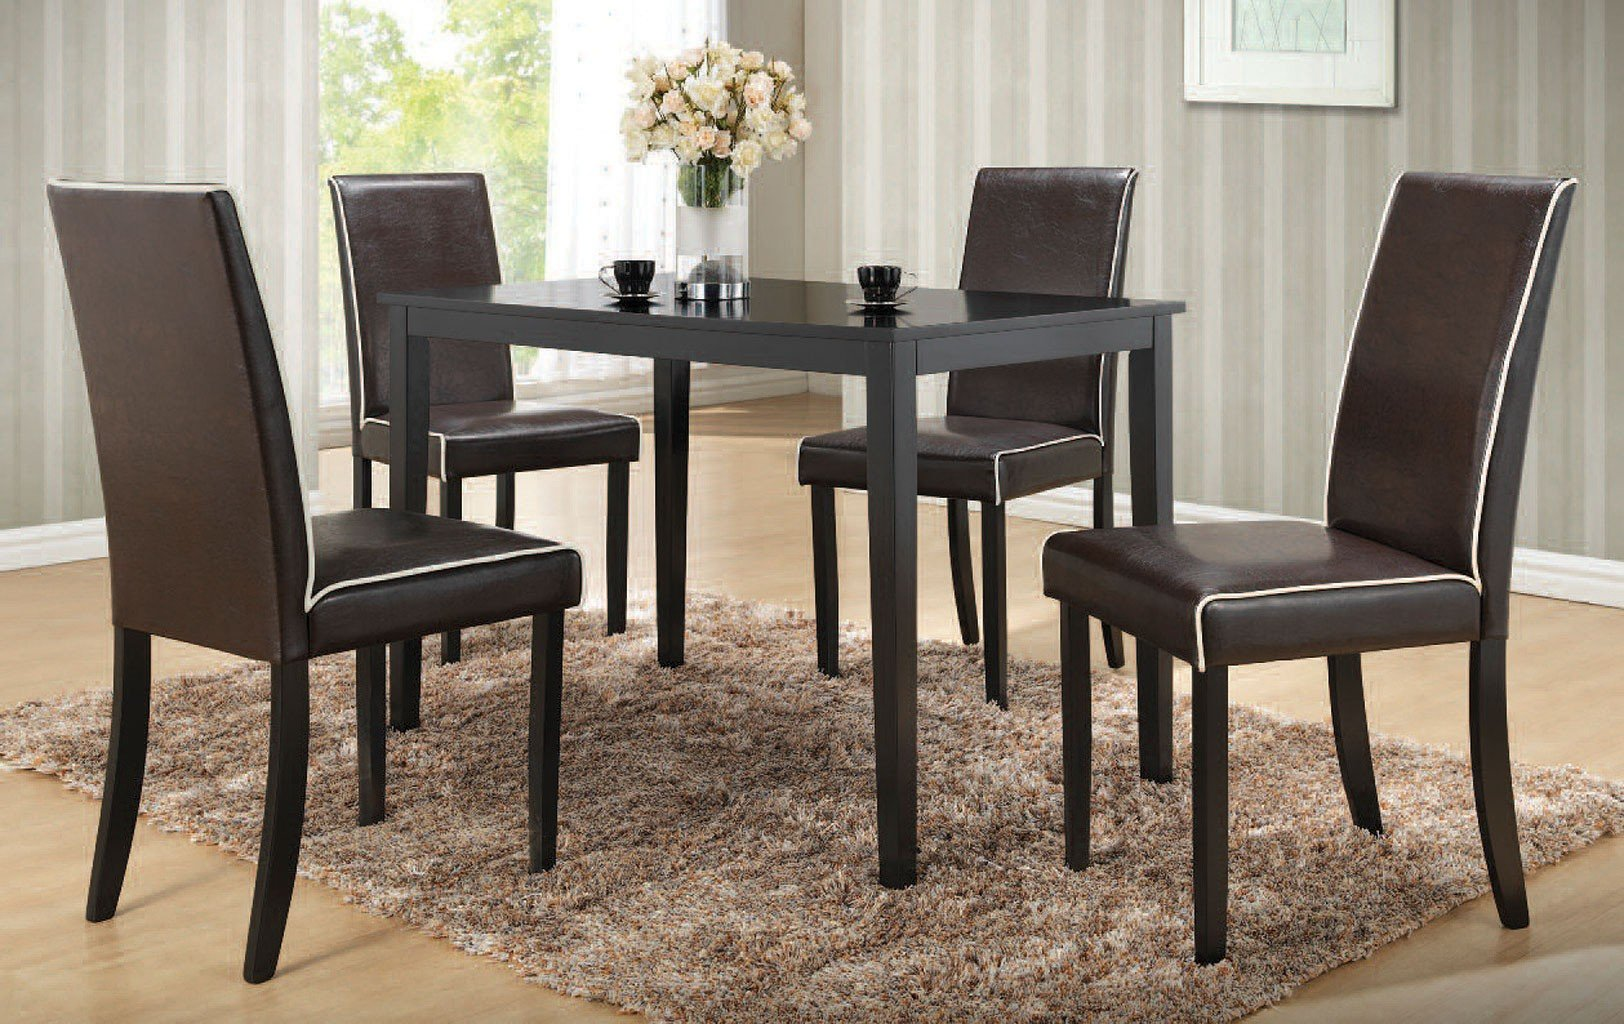 Houston Dining Room Set W/ Black Chairs